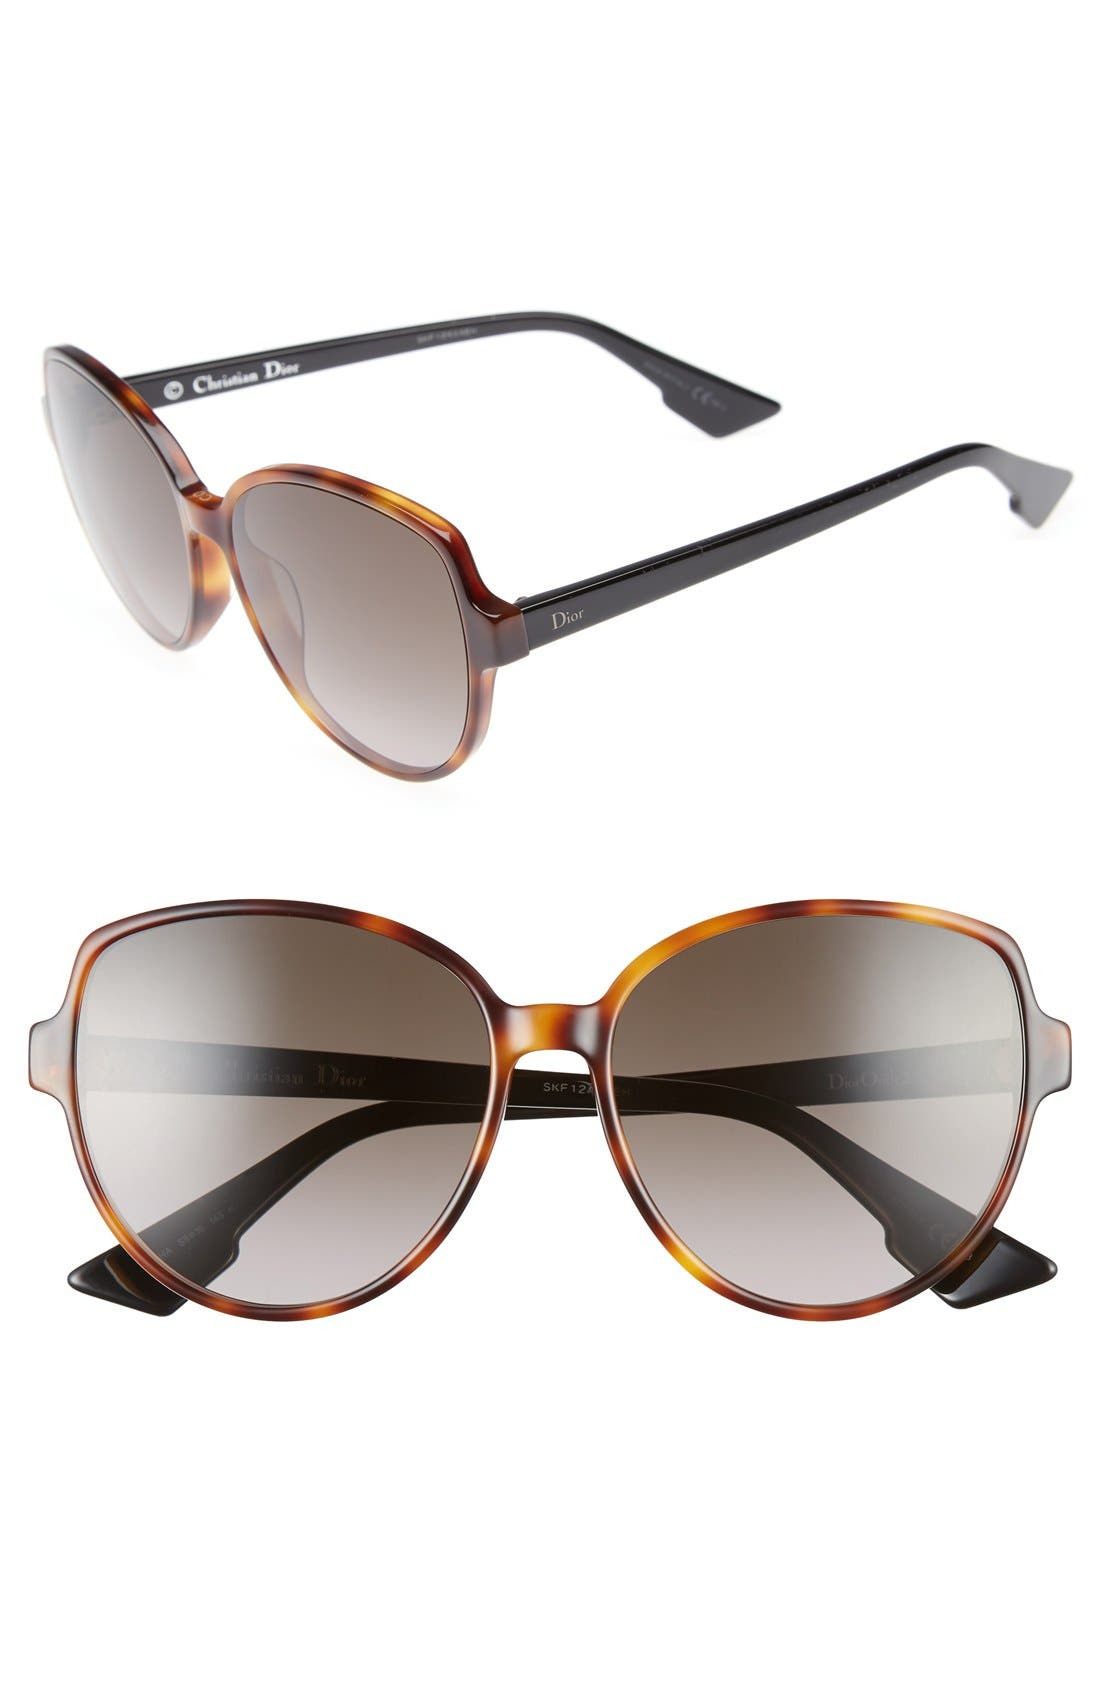 Alternate Image 1 Selected - Dior Onde 2 58mm Sunglasses